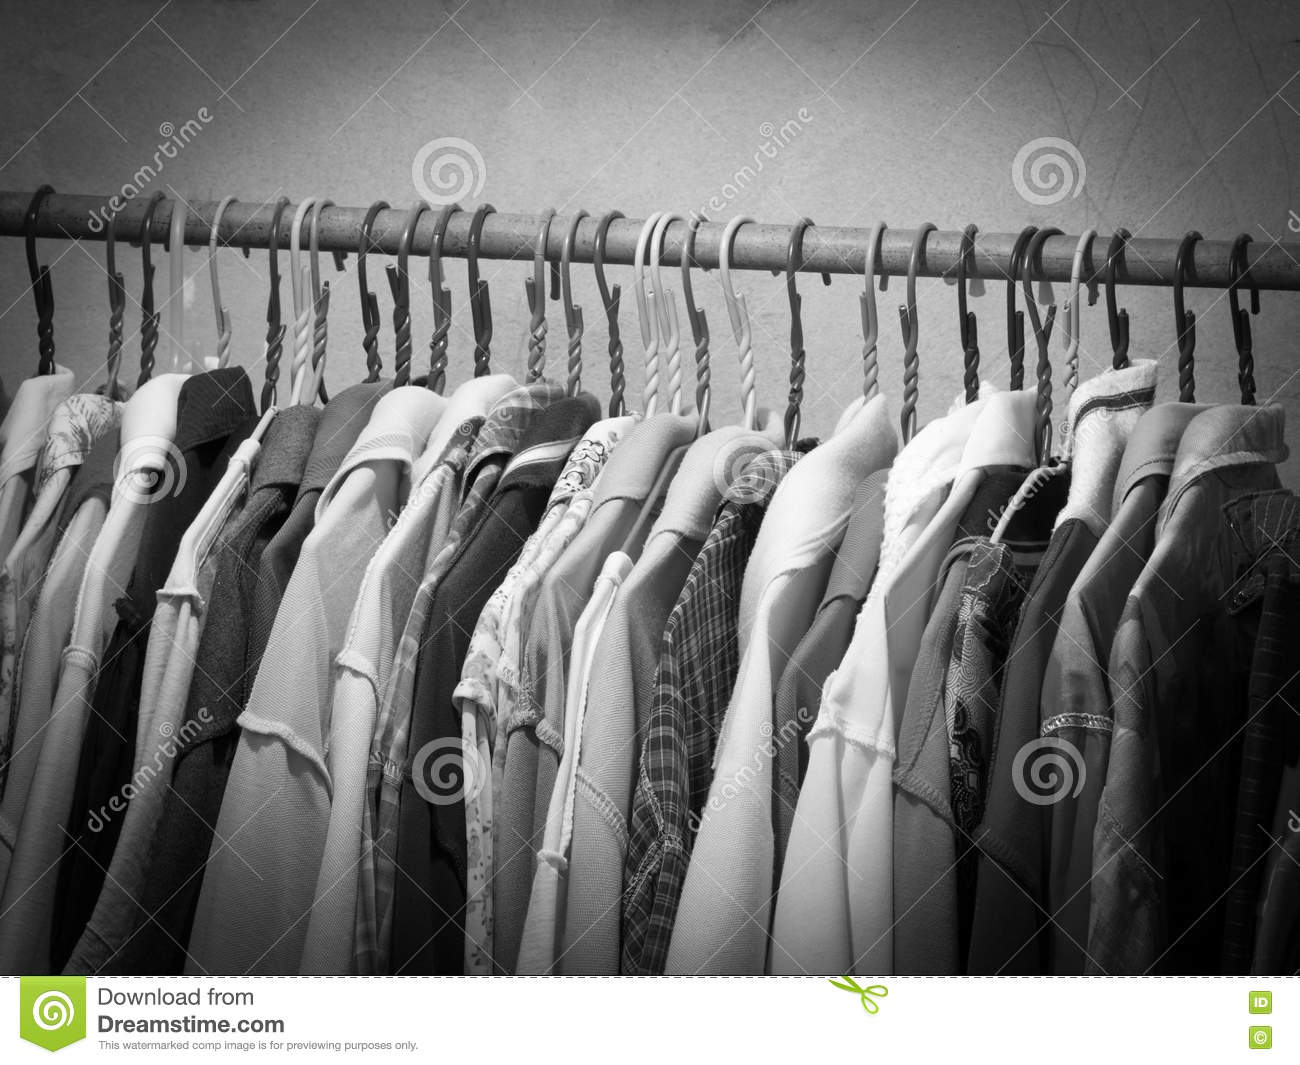 Black and white image of clothes hanging on hanger rack choice of